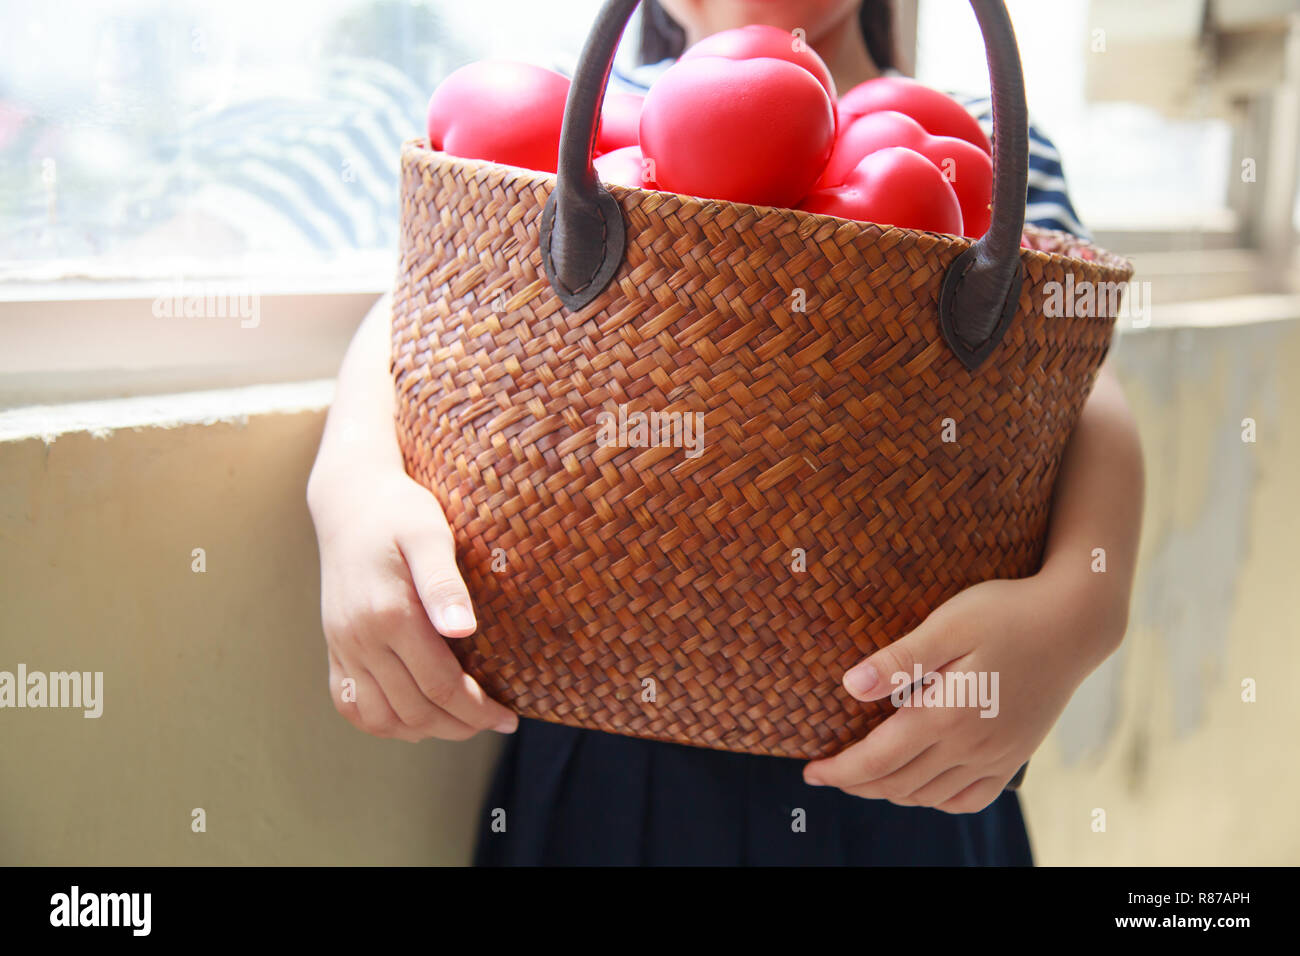 girl in navy blue striped dress handing basket of red hearts represents helping hands, family support, morale, purity, innocence, cheer up, loves, hos Stock Photo